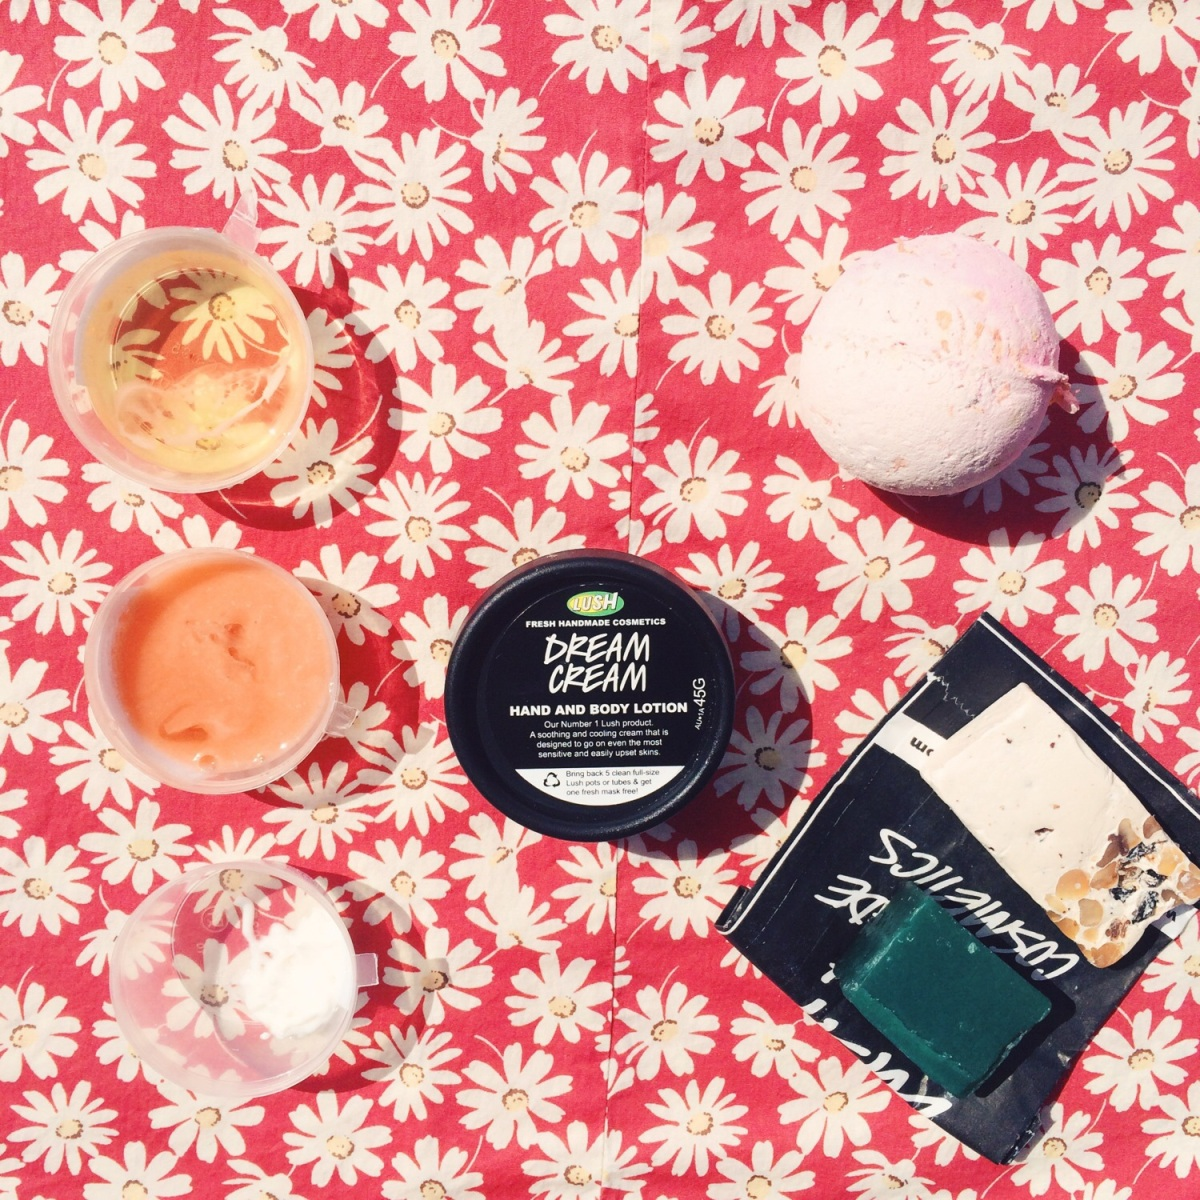 BEAUTY REVIEW: Lush Cosmetics for sensitive skin